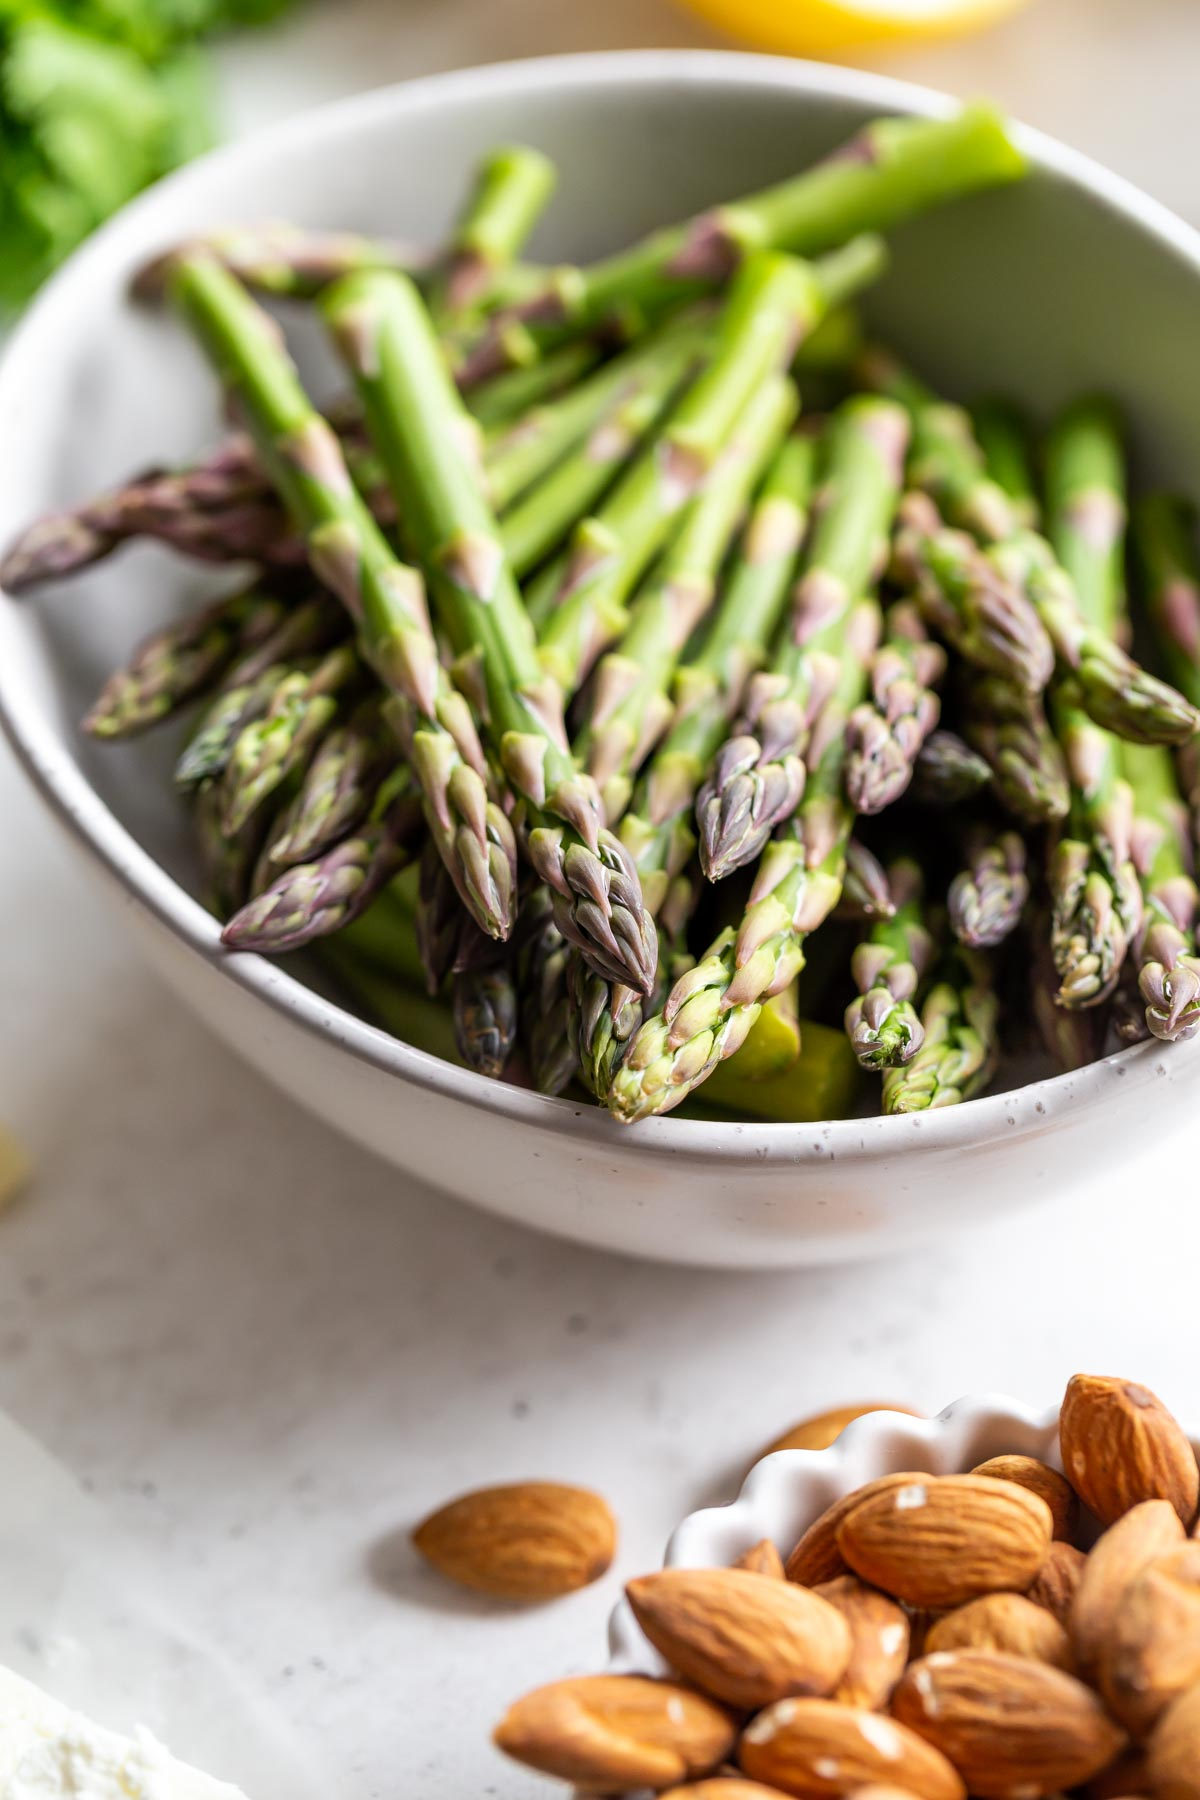 Up close of asparagus spears in a bowl.